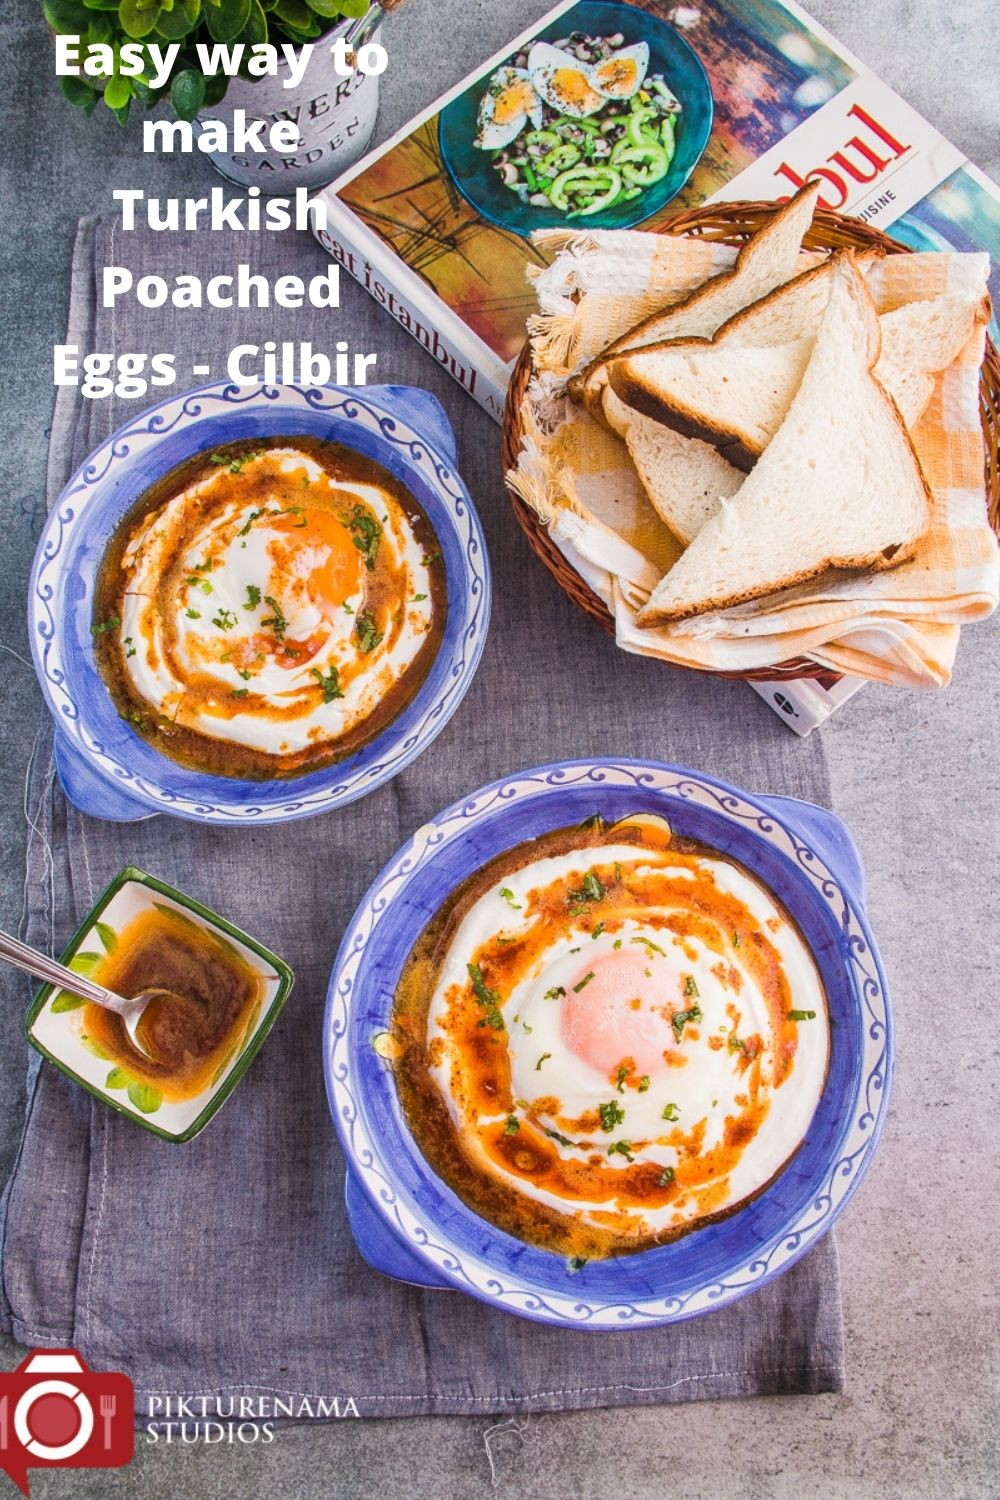 Easy way to make Turkish poached eggs - Cilbir for Pinterest